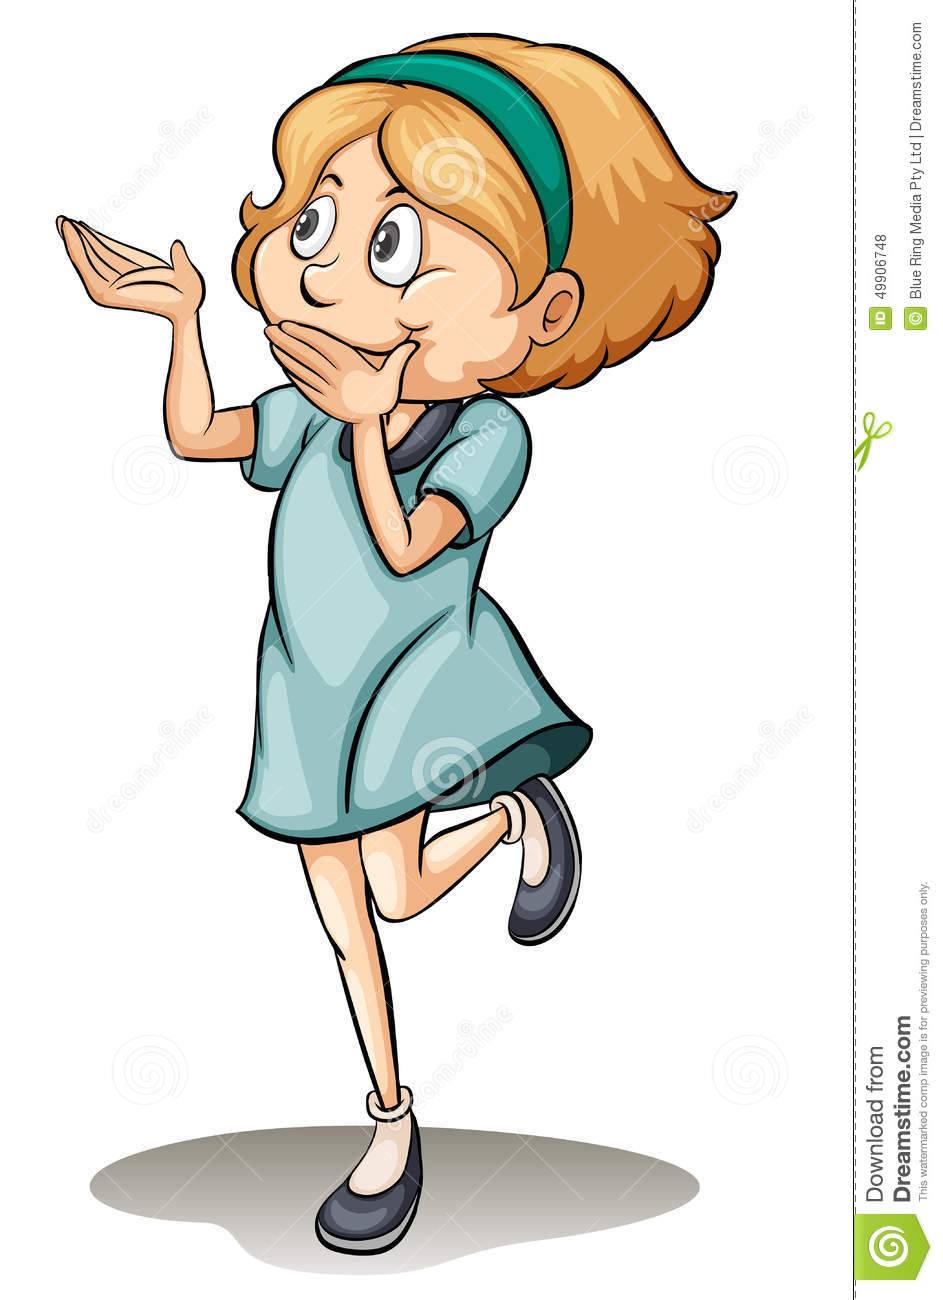 A Girl Standing On One Leg Stock Vector.